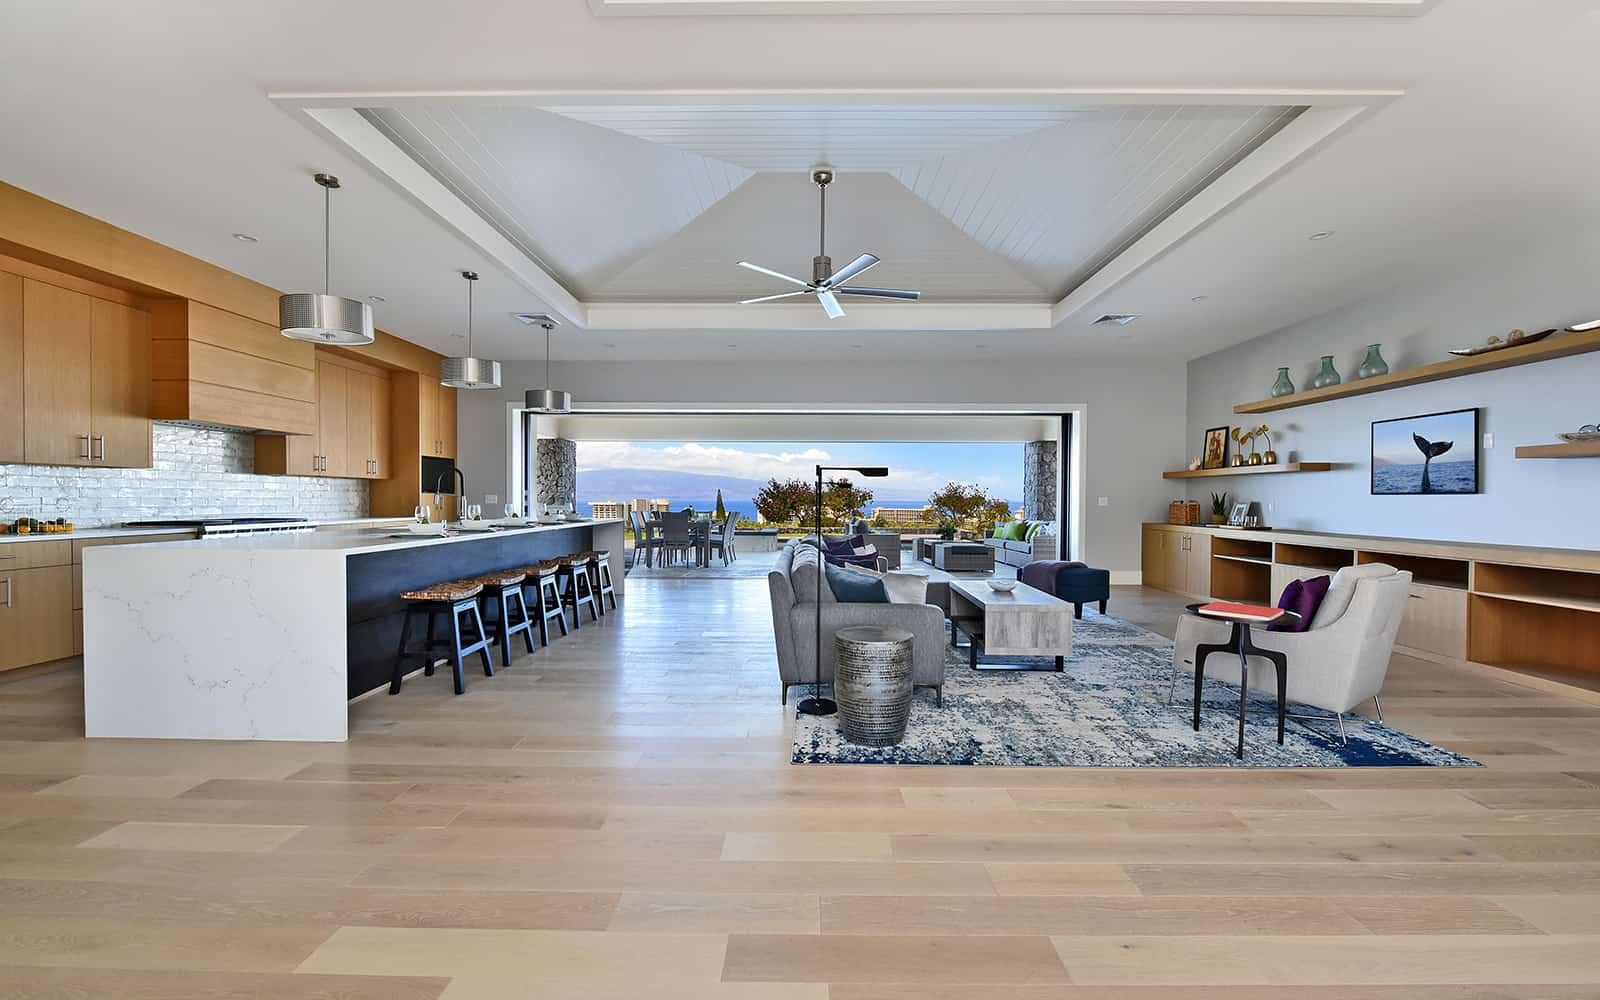 New luxury home built by Crescent Homes Maui